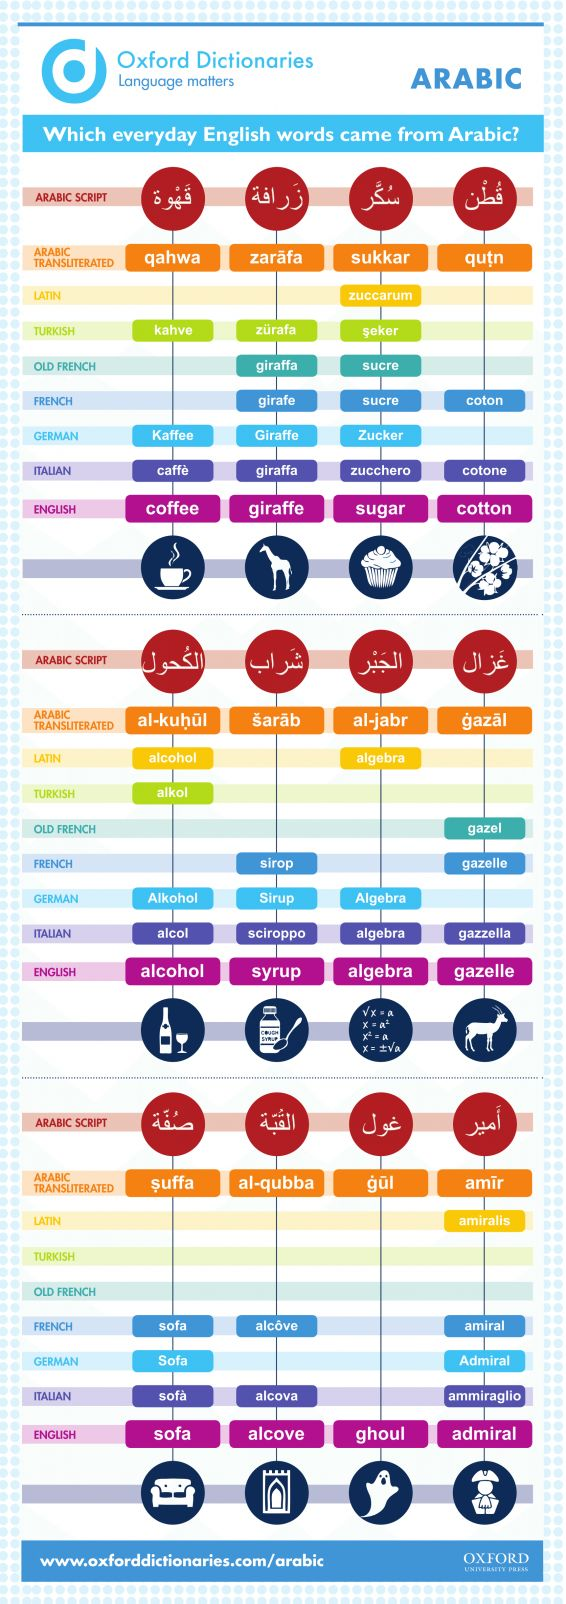 Which everyday English words came from Arabic? Arabic-based etymologies of English words.